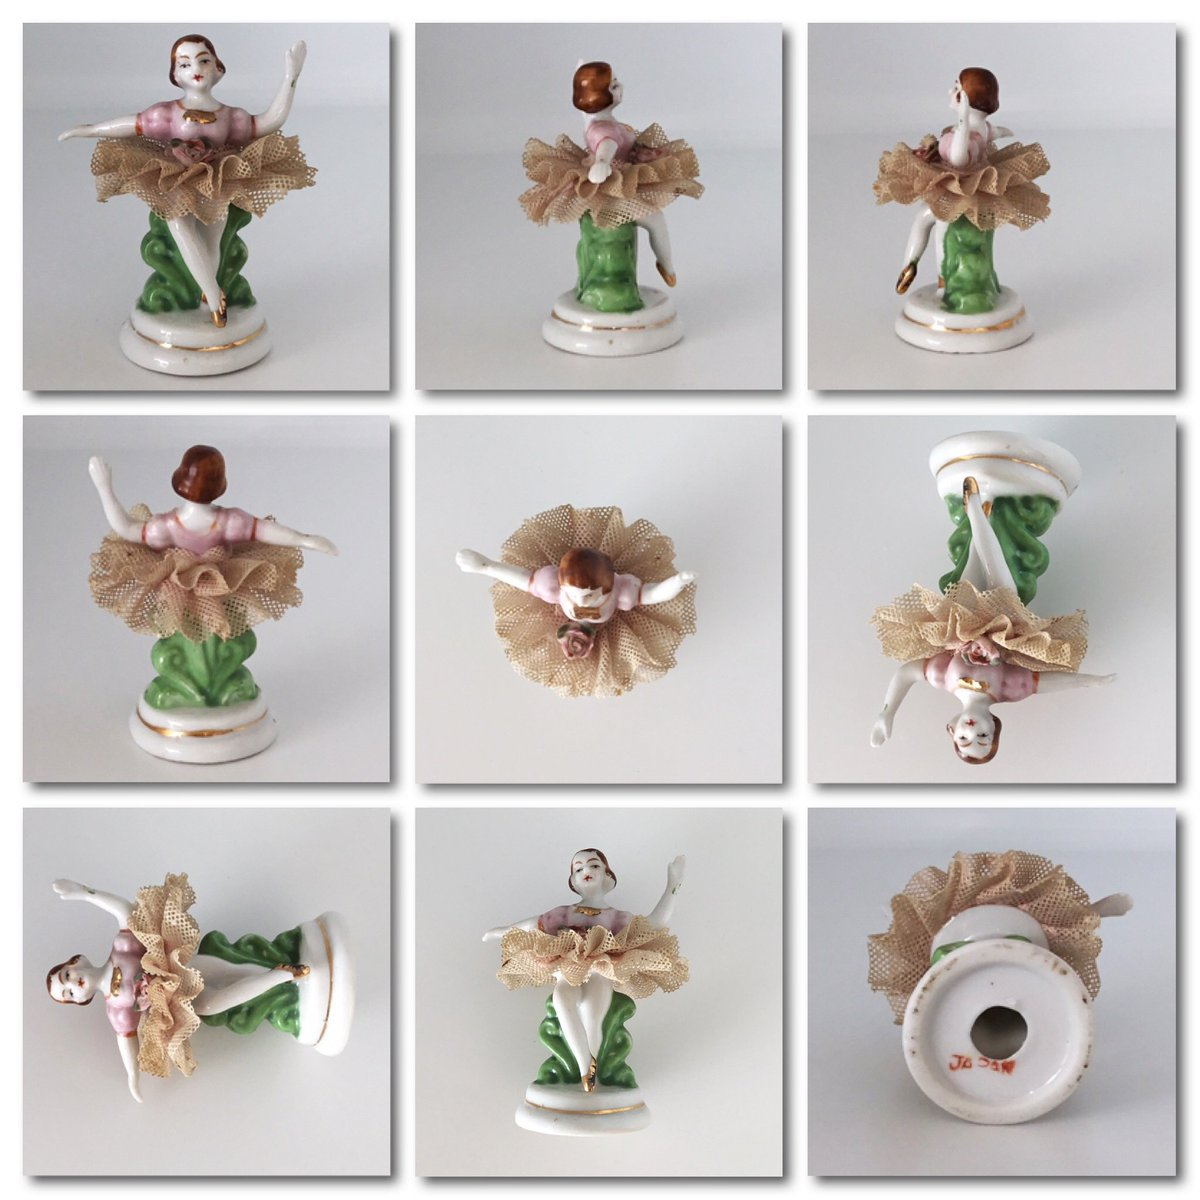 oldies and newbies #jewelrybubble  For #him or #her https://t.co/xPuSWFXXw0  #giftideas #Collectibles #homedecor #vintage #RT https://t.co/rUtVRAnr7z